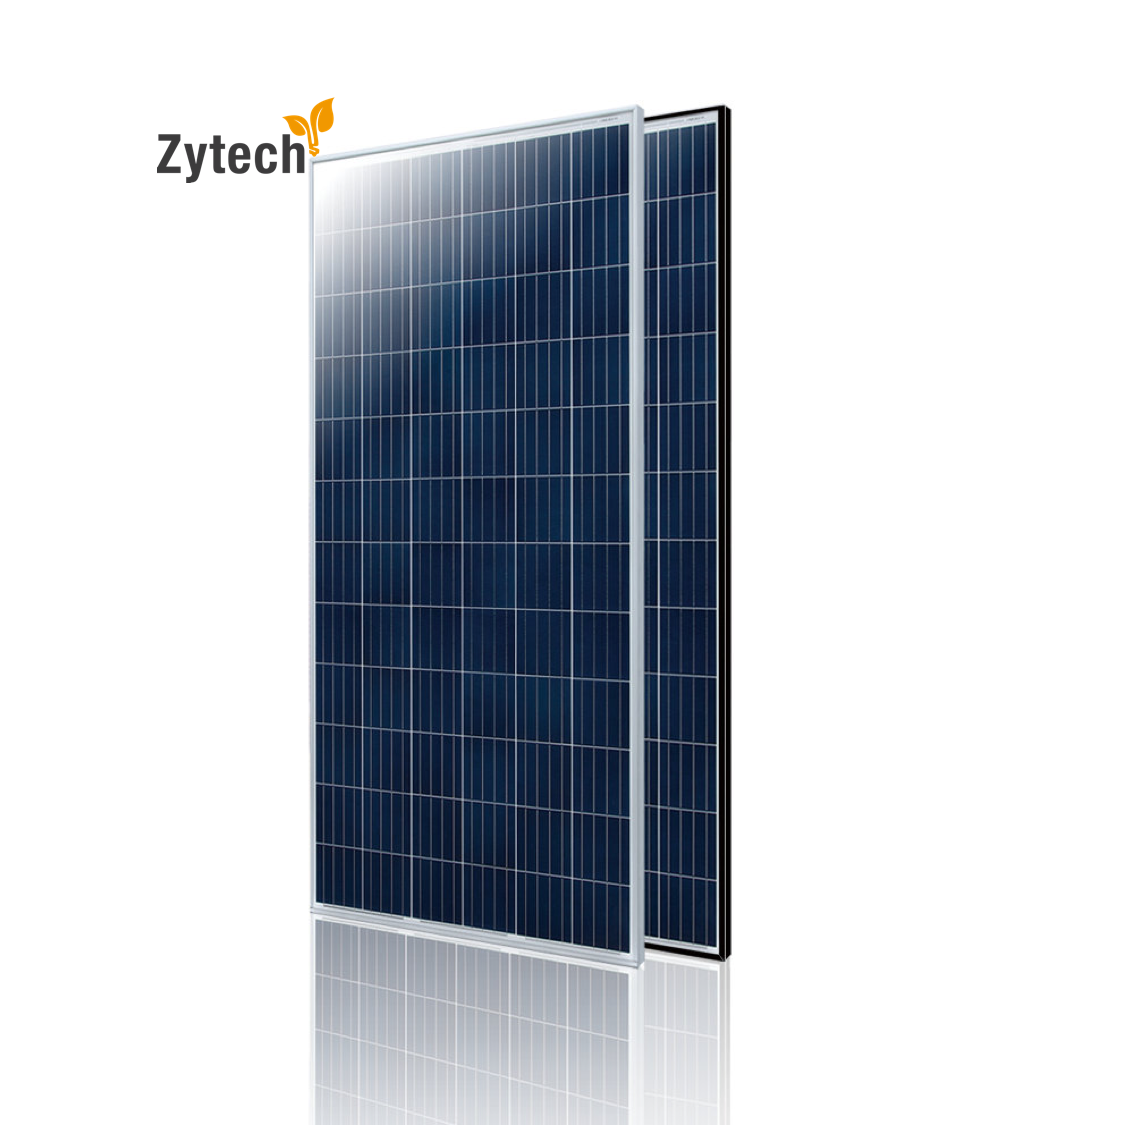 Zt 250p 255p 260p 0 3 Wp Roof Solar Panel Solar Panels Solar